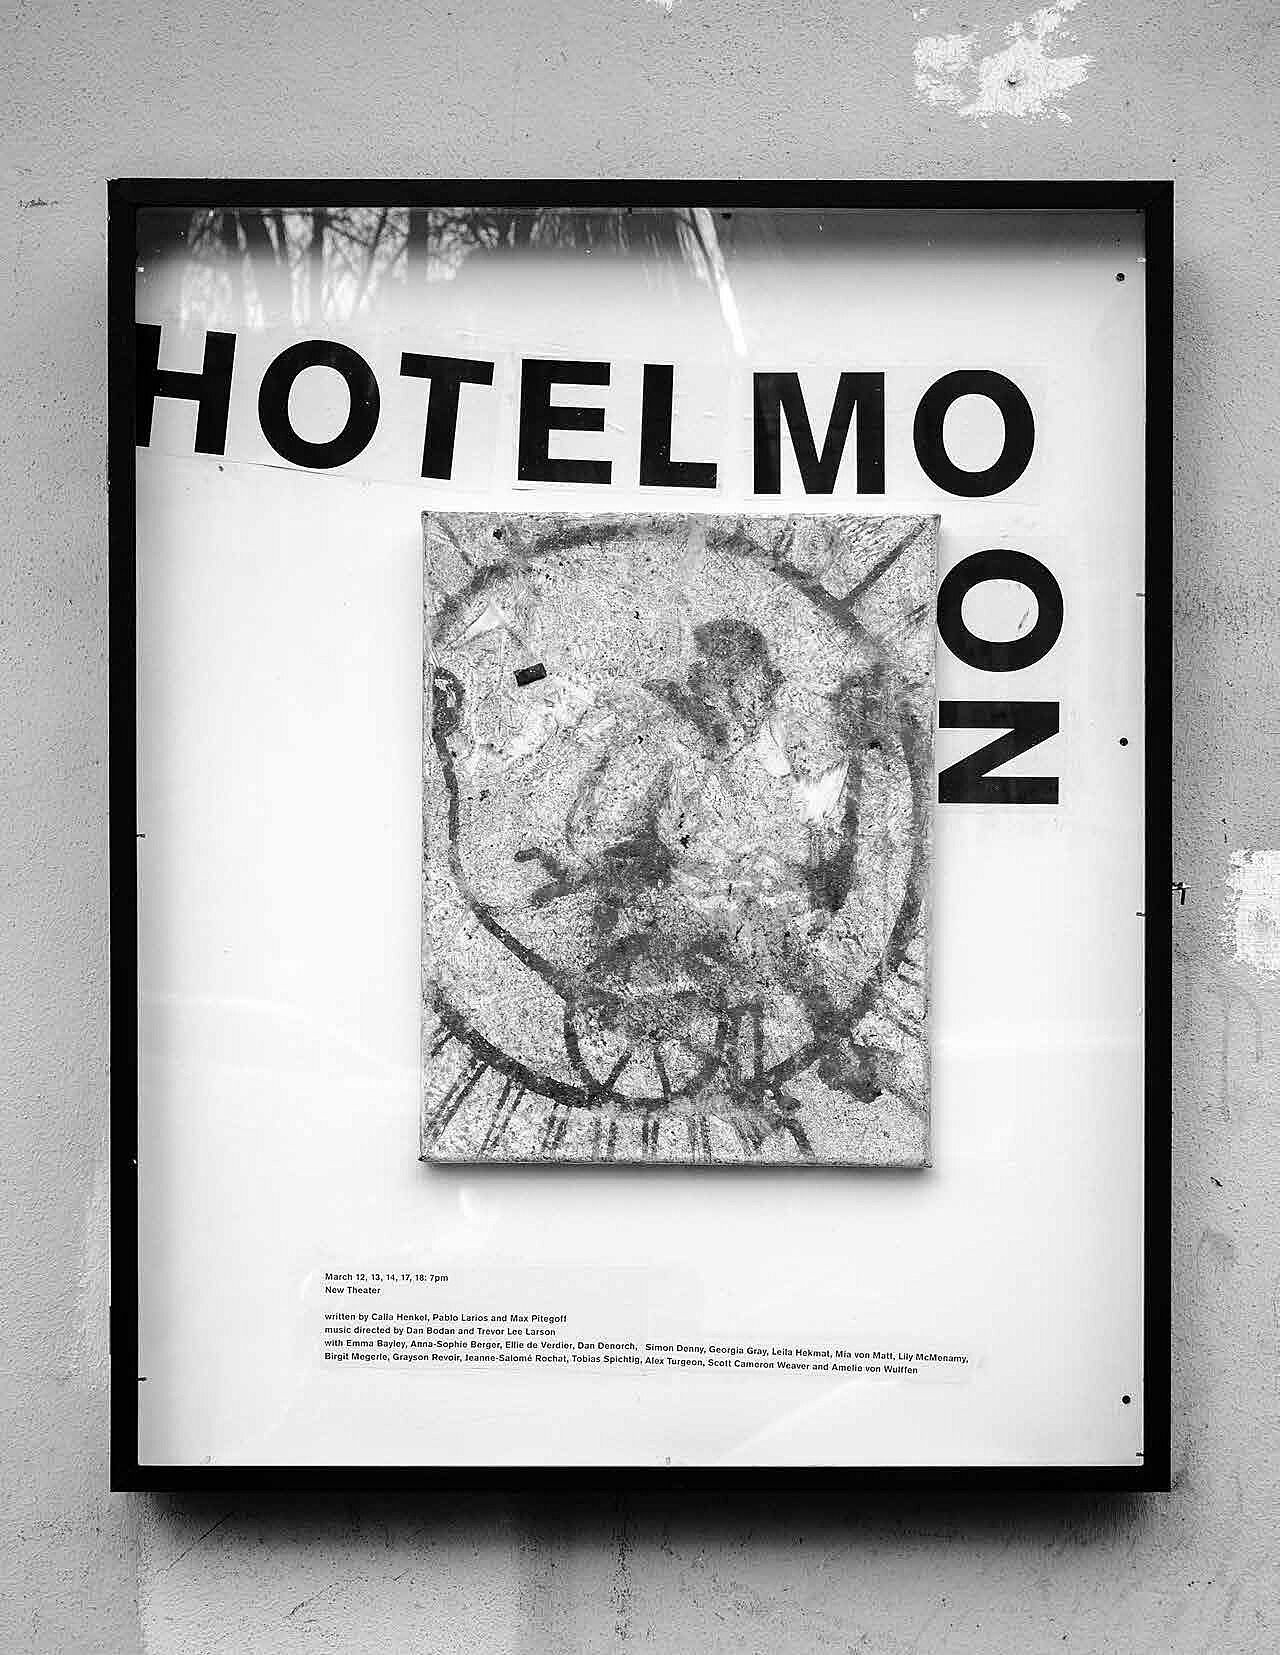 Hotel Moon image and picture frame.